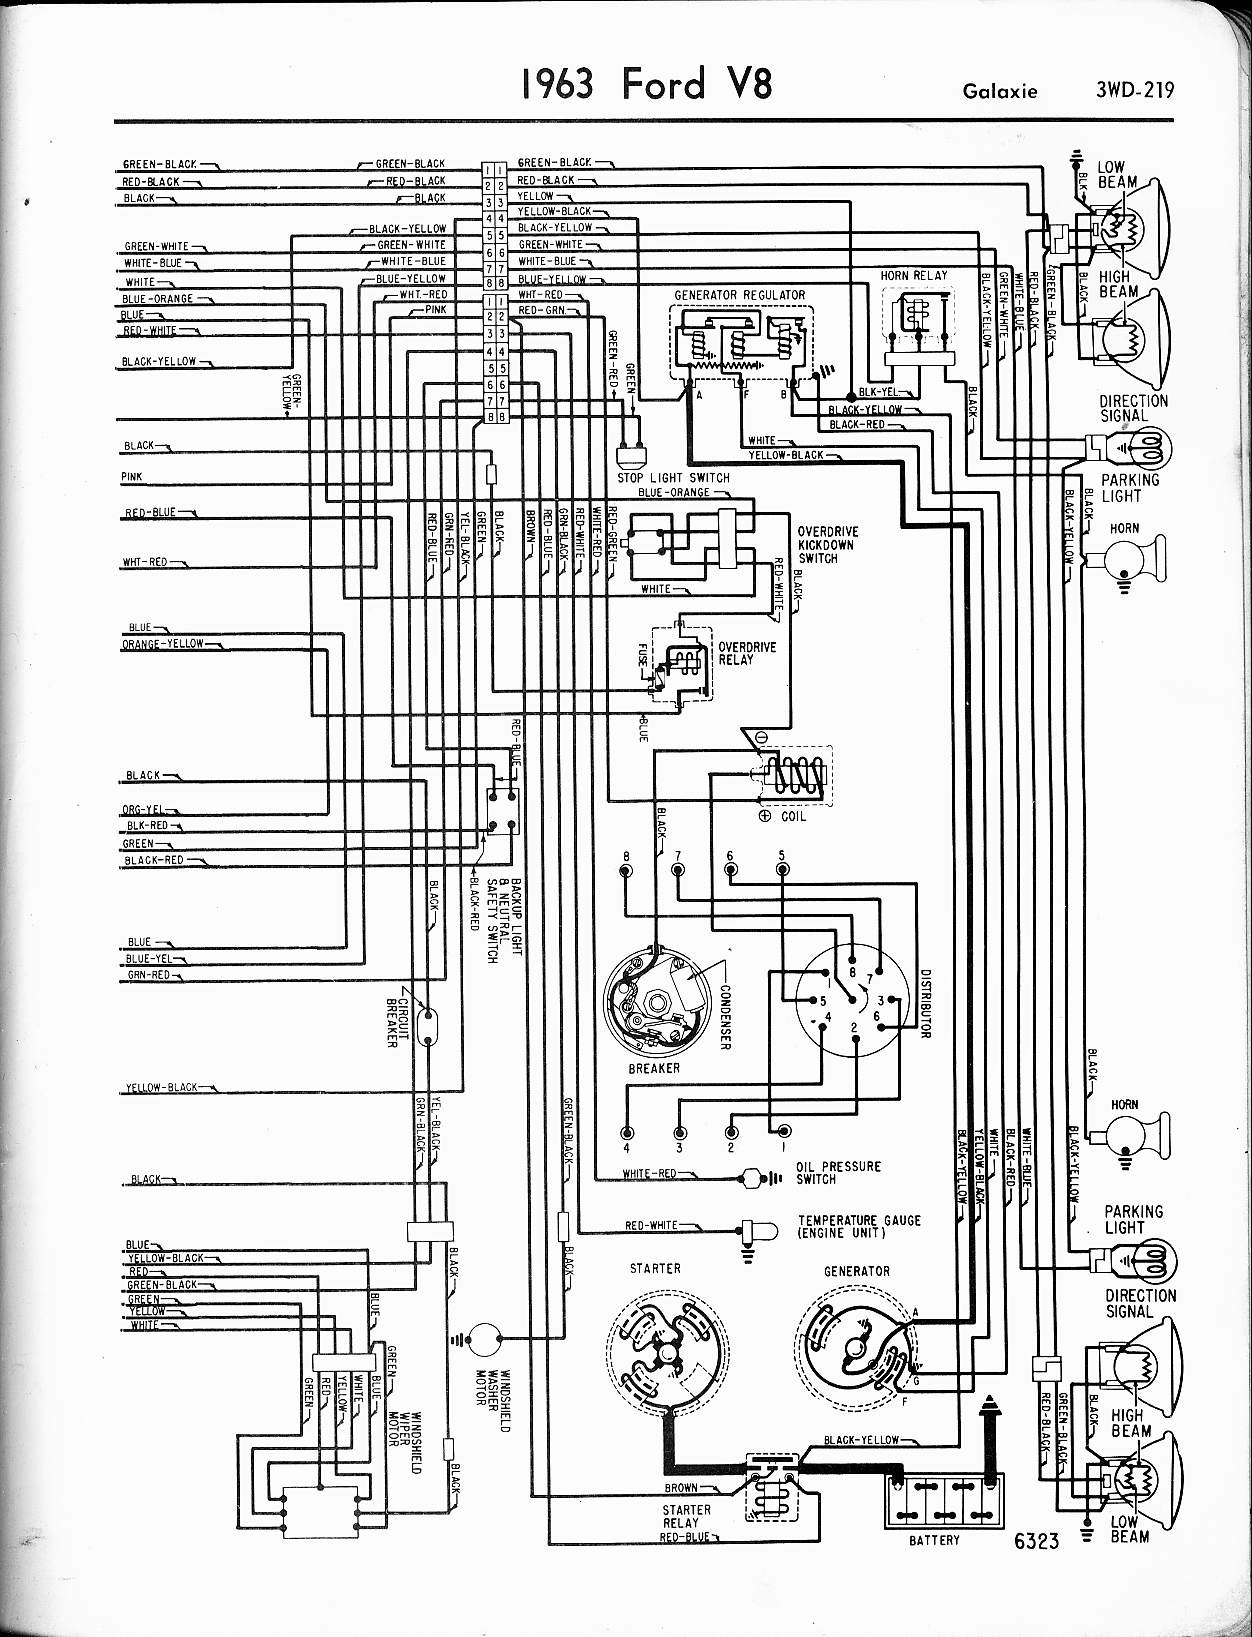 1967 Mustang Wiring And Vacuum Diagrams as well 1965 Chevy Biscayne Wiring Diagram further 71 F100 Fuse Box also 764826 Steering Column Issue After Converting Power Steering Please Help additionally Discussion C13141 ds679408. on 1965 ford thunderbird wiring diagram